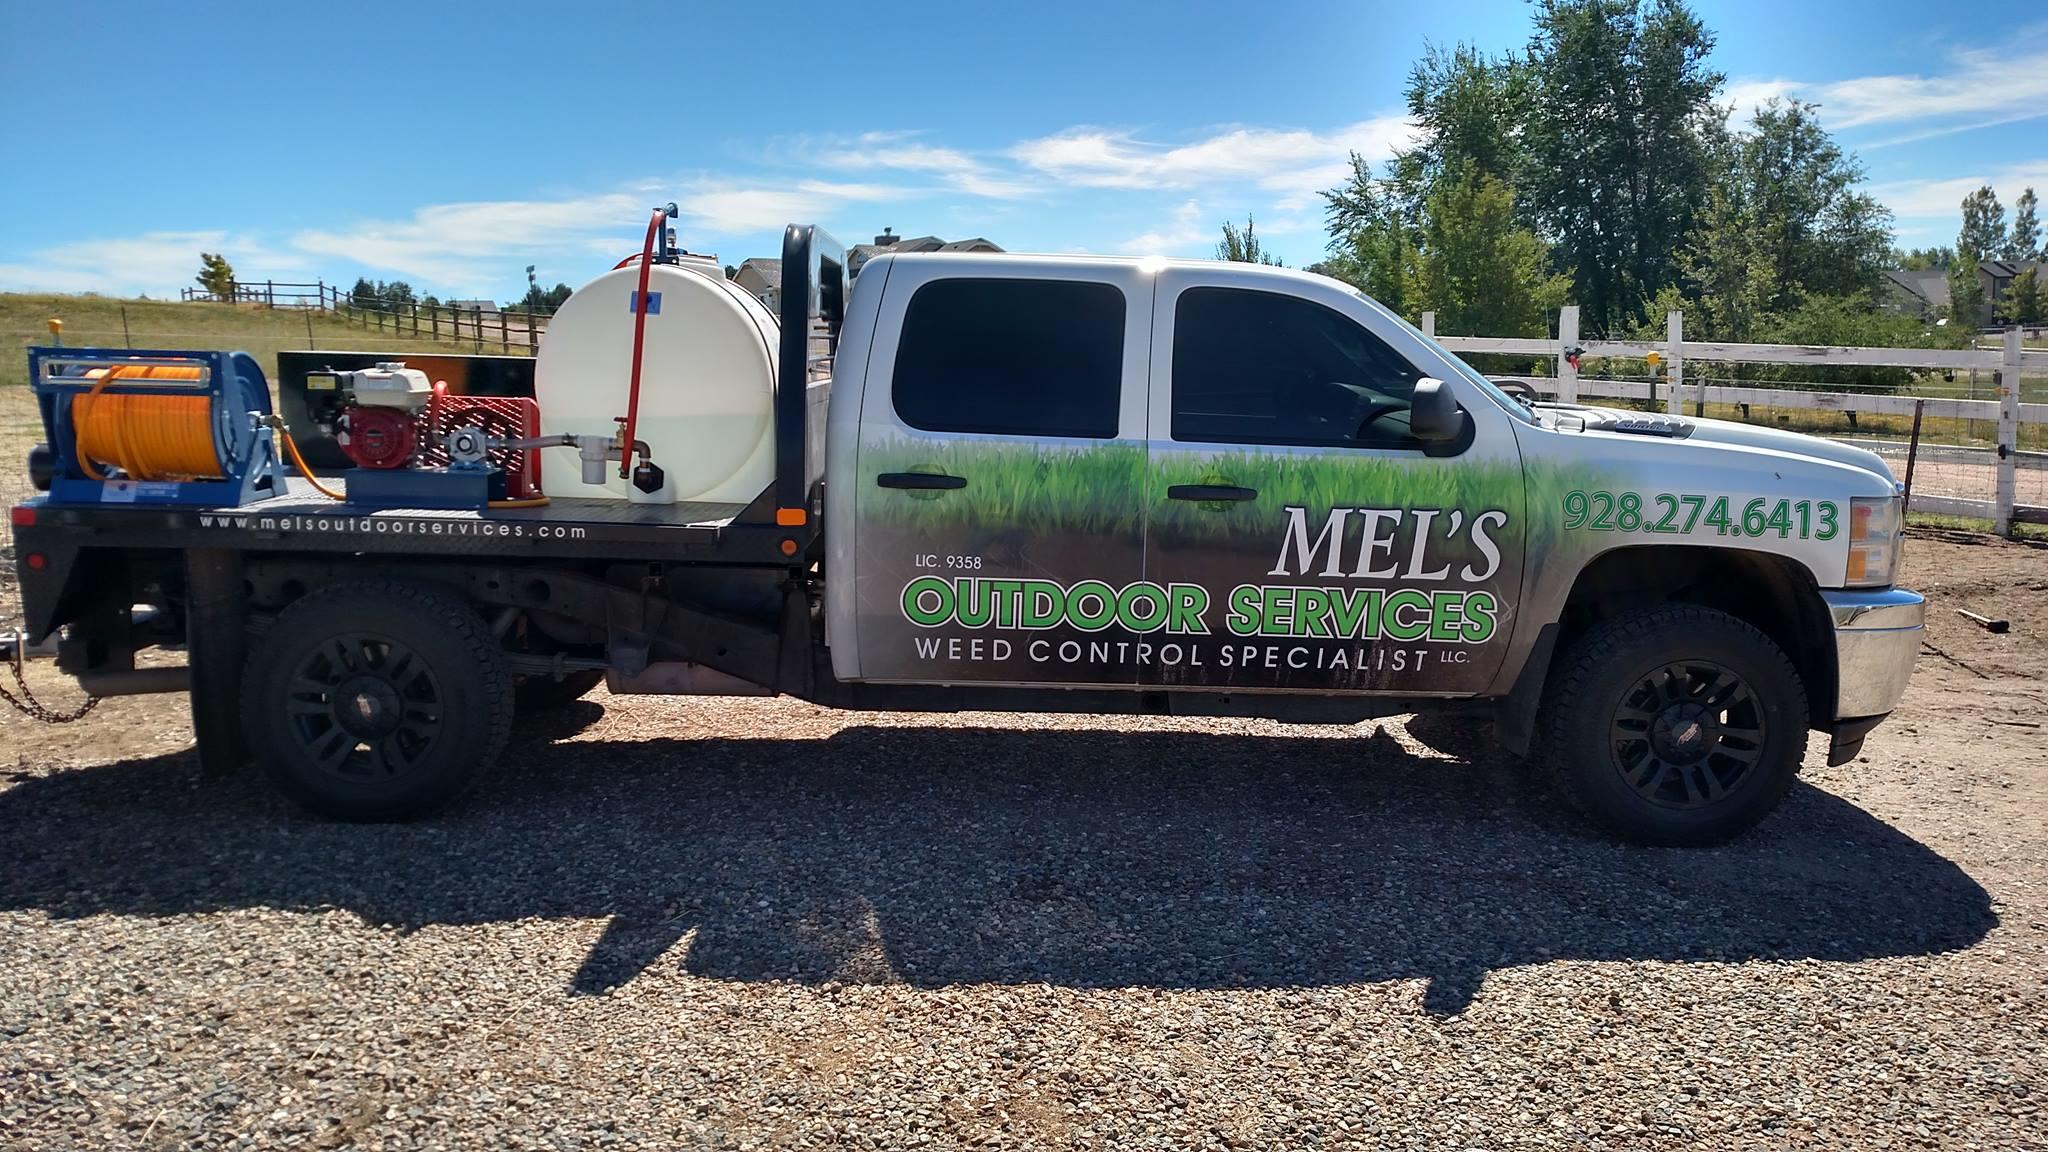 Mel's Outdoor Services image 1